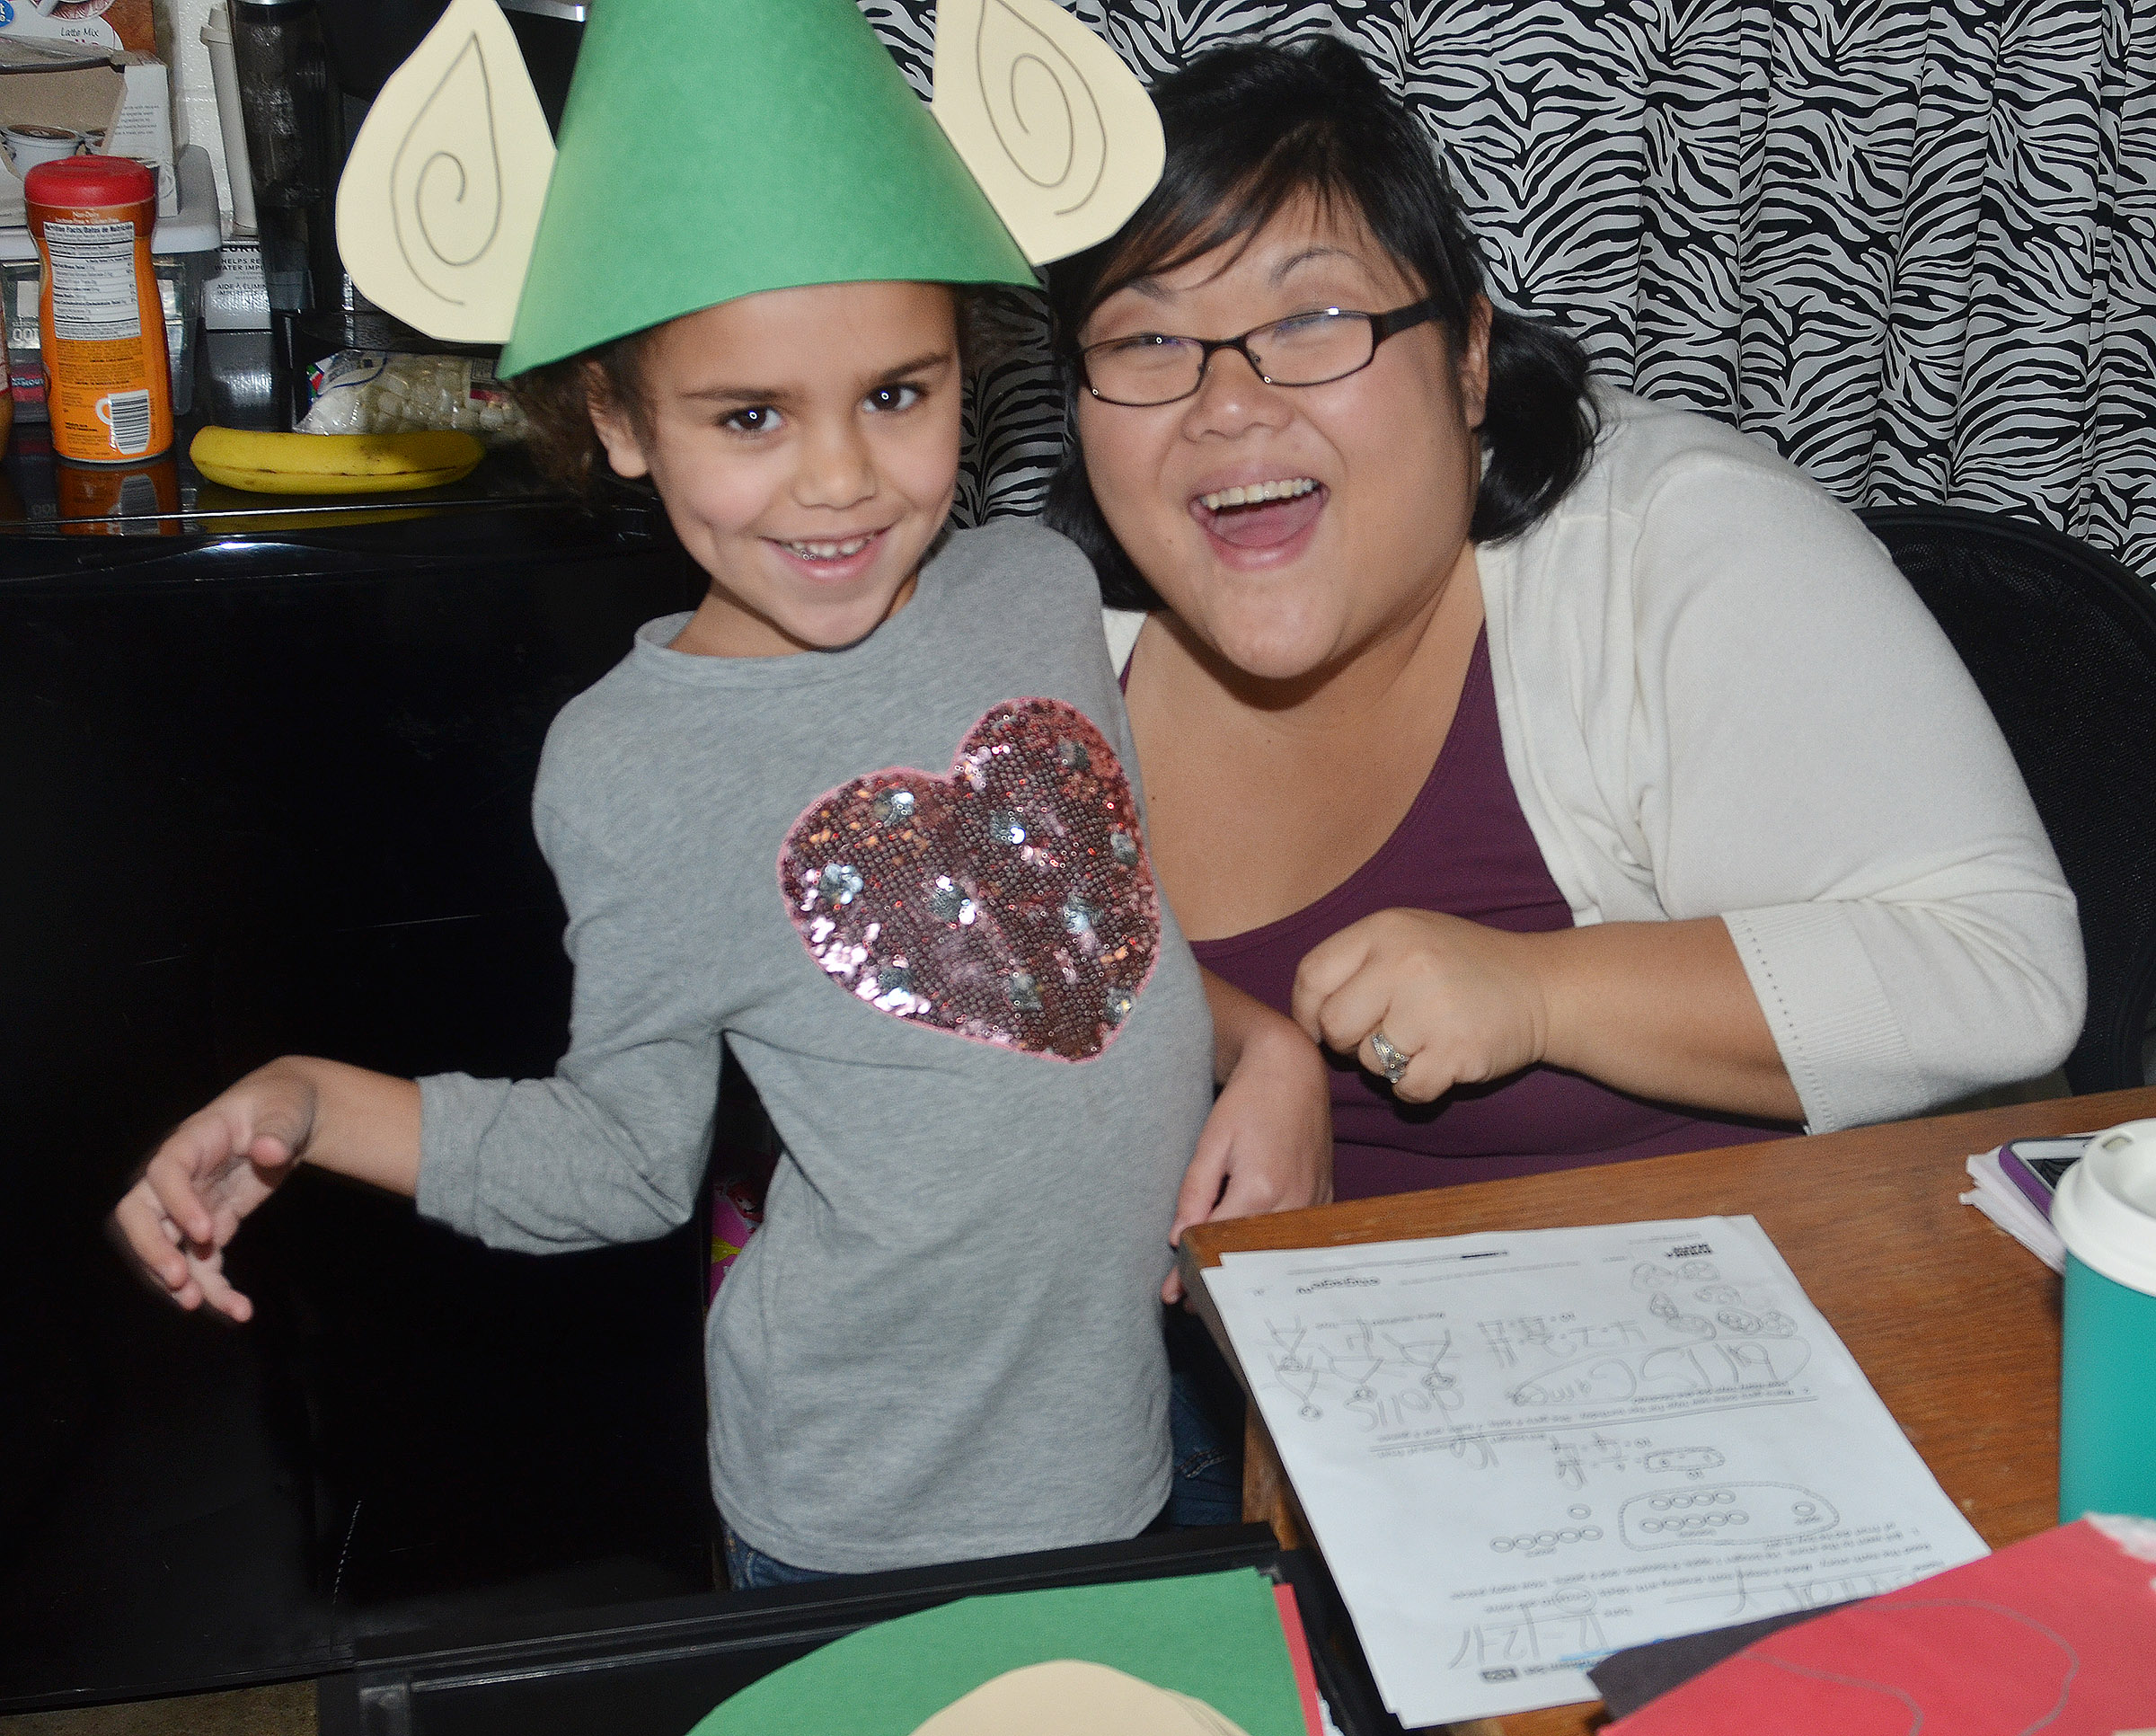 CES kindergarten assistant Brittany Johnson poses with Adelyn Litsey as she wears her elf hat.